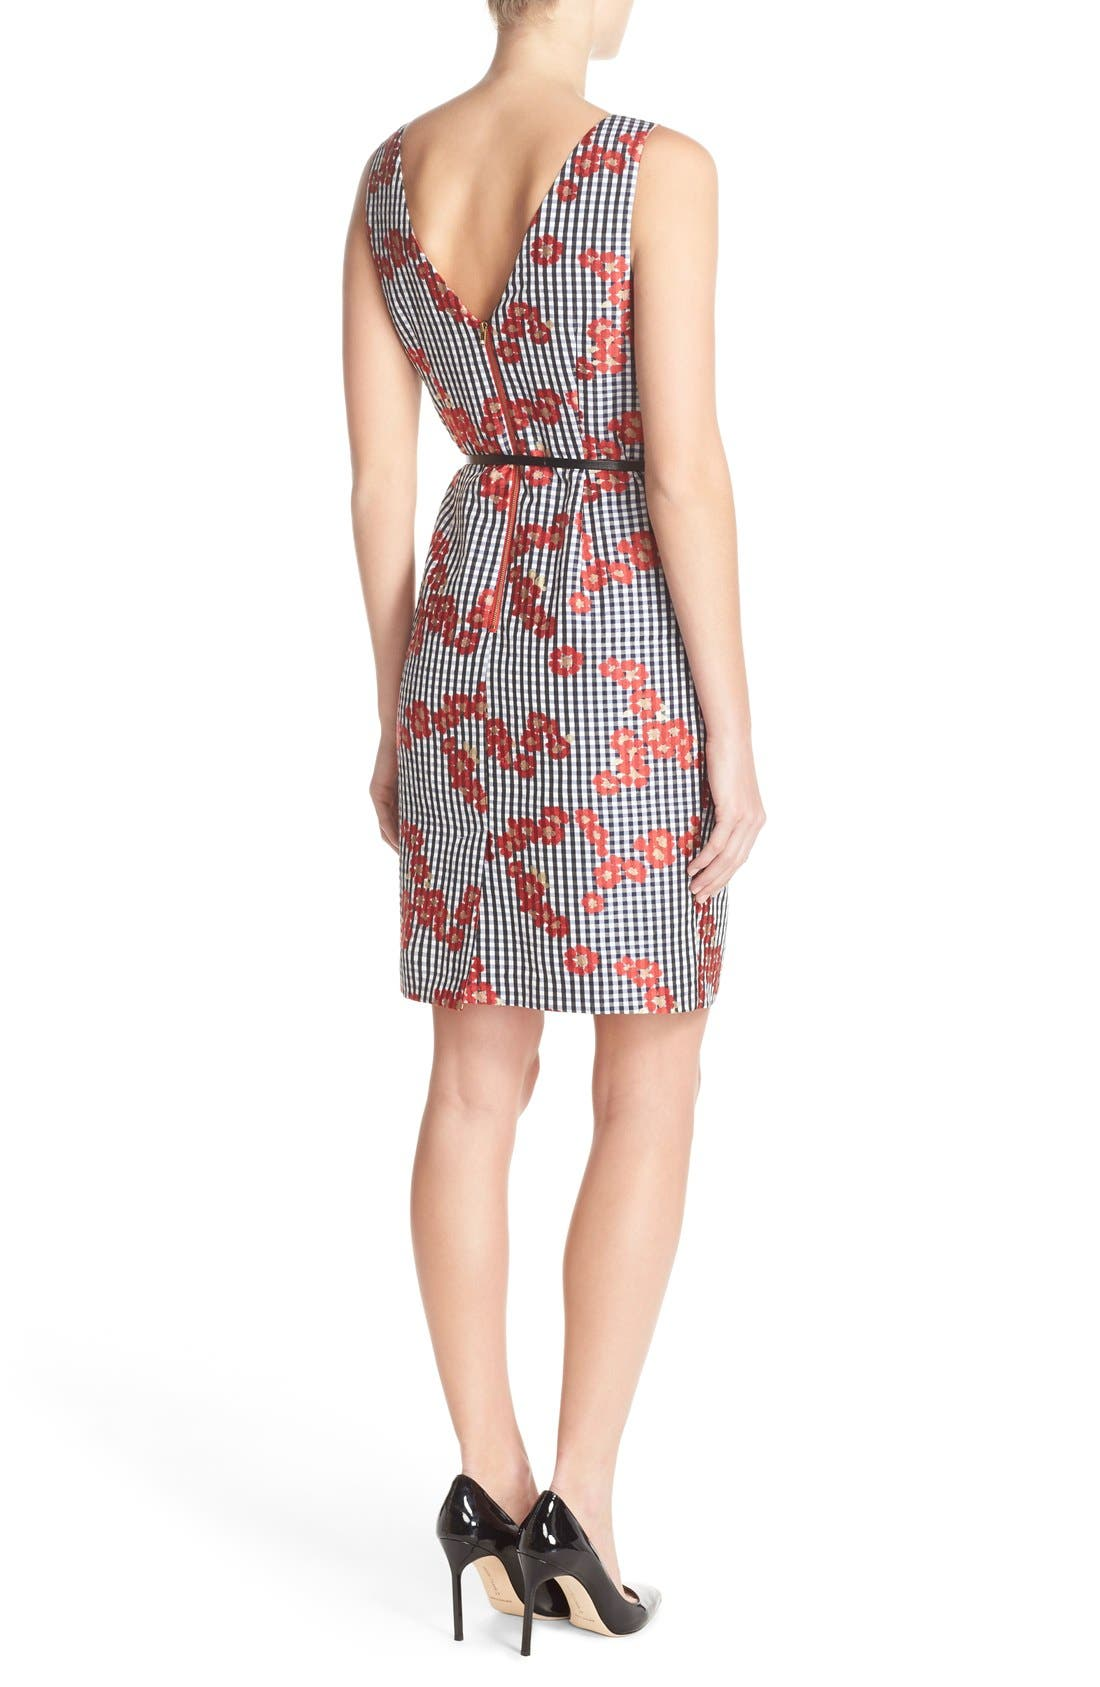 Alternate Image 2  - Adrianna Papell Floral & Gingham Jacquard Sheath Dress (Regular & Petite)